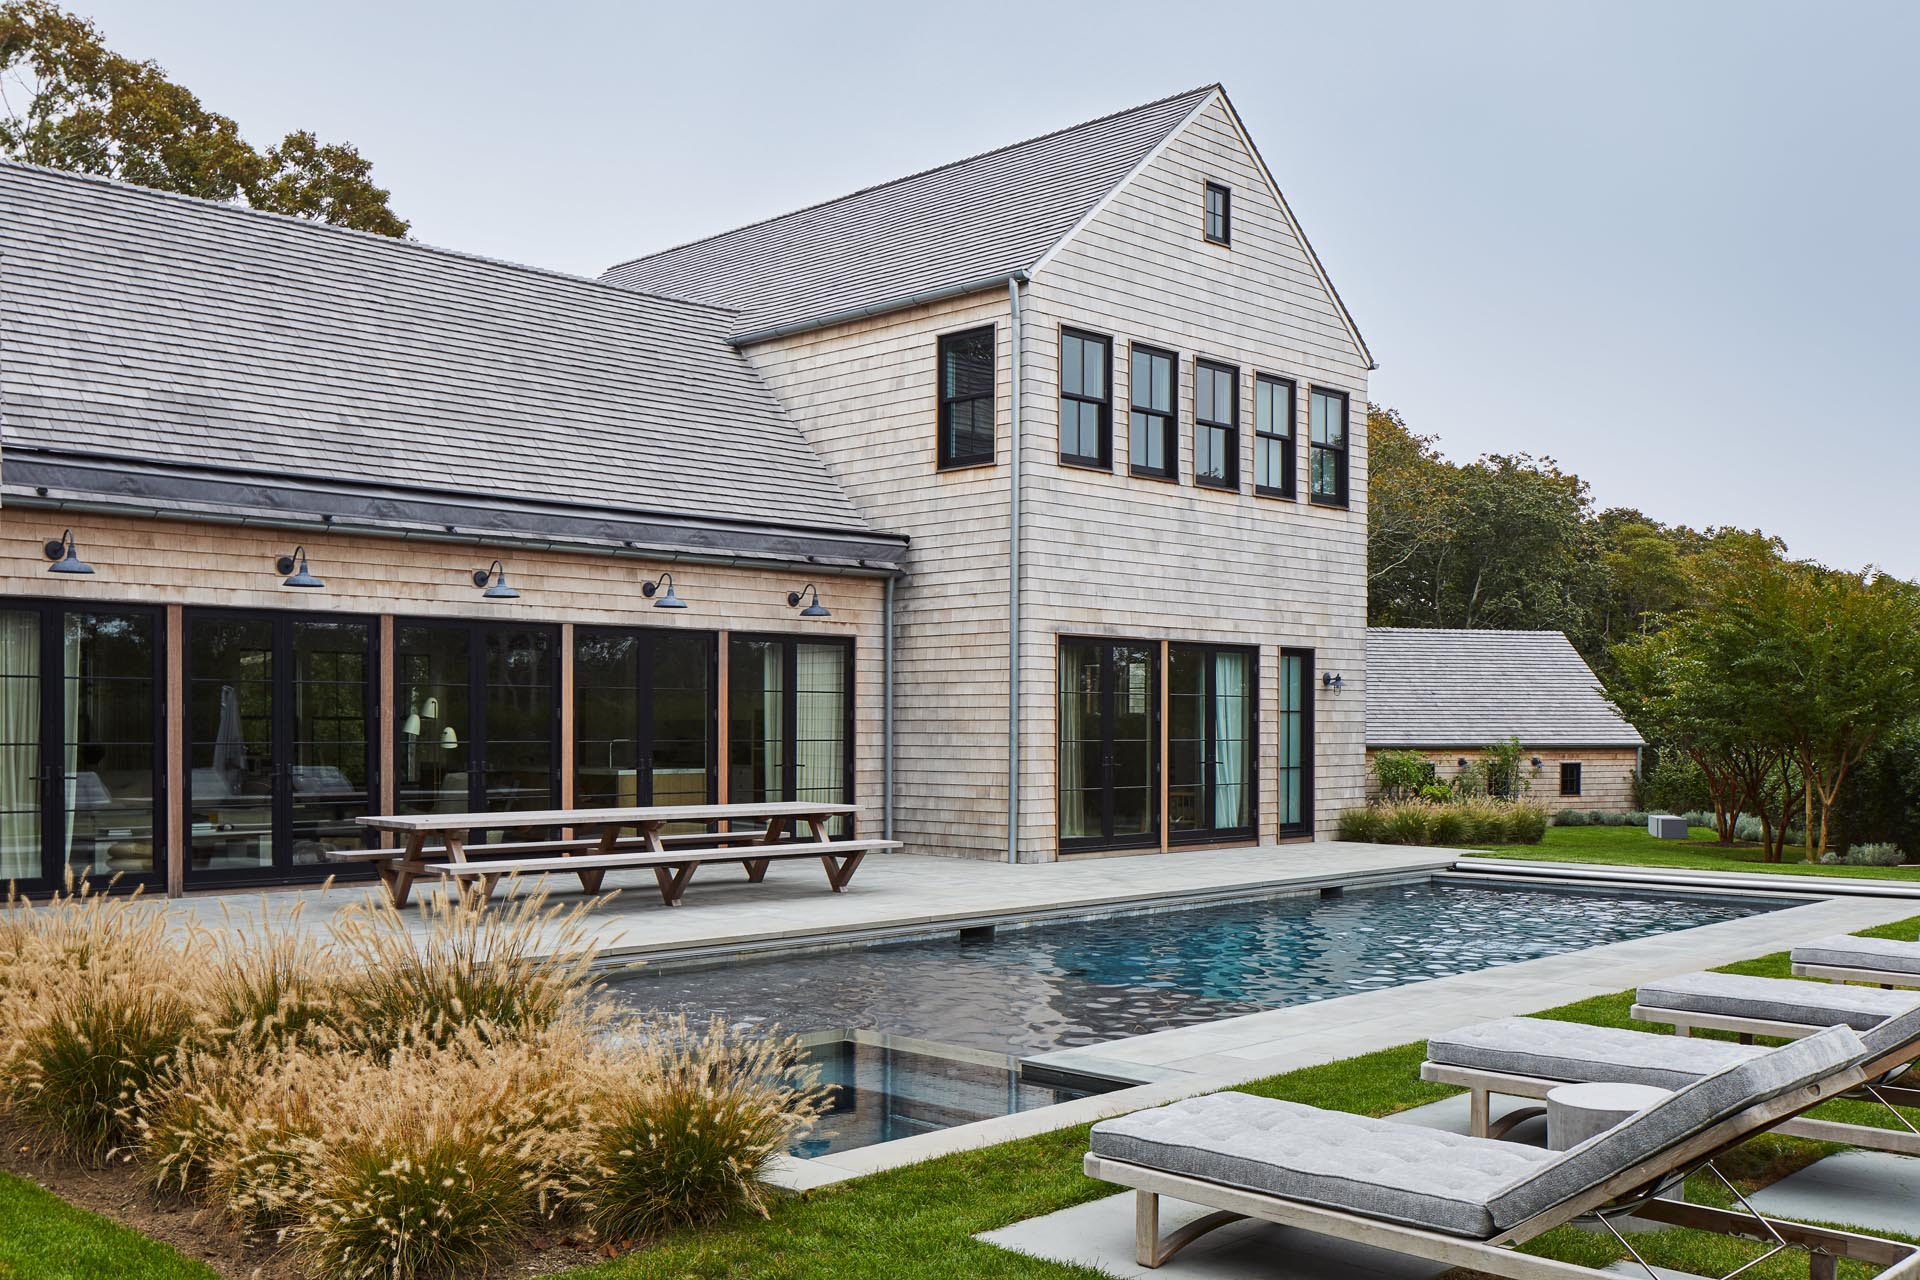 Located in Amagansett, New York, this modern farmhouse inspired home has a wood shingle exterior, as well as a swimming pool and patio.